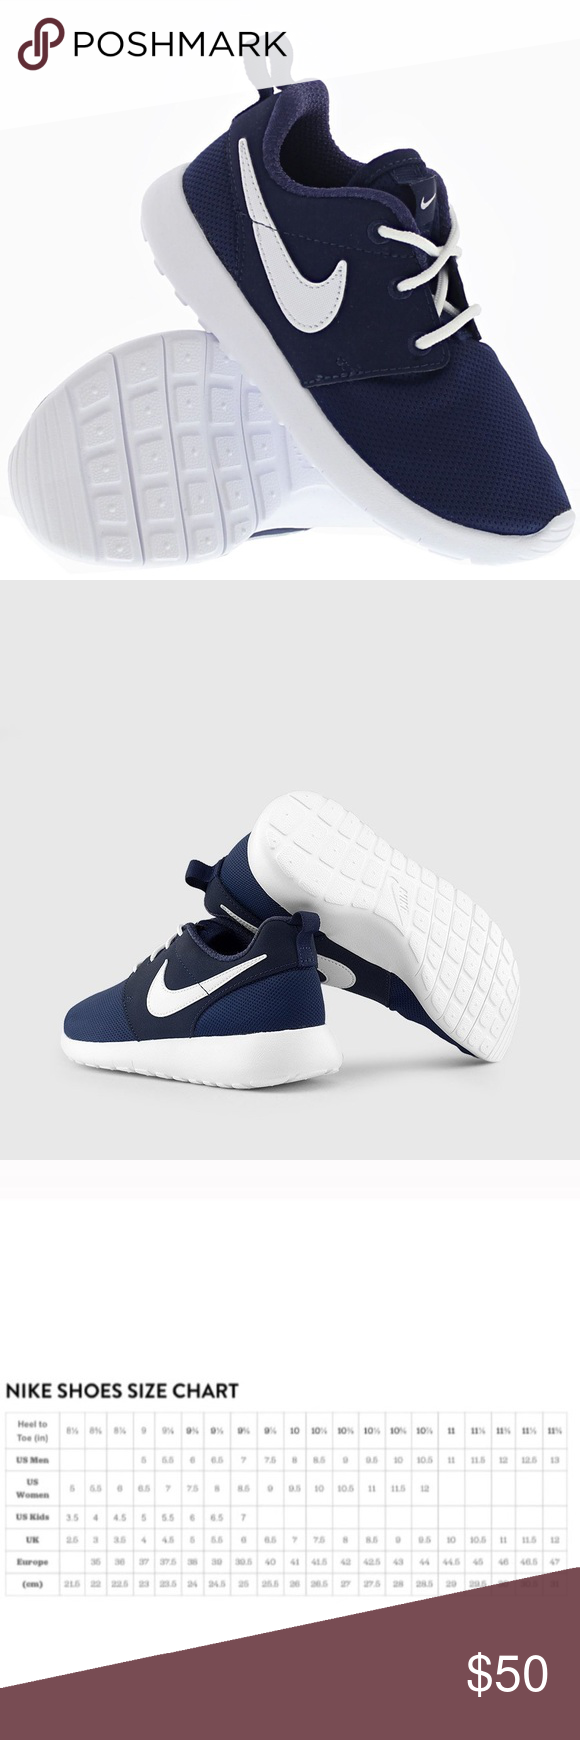 6ab90f4b1b108 Nike Roshe one navy blue white womens shoes new Brand new without box. Shoes  are a youth size 6.5 which is a women s size 8. I have added a Nike  conversion ...